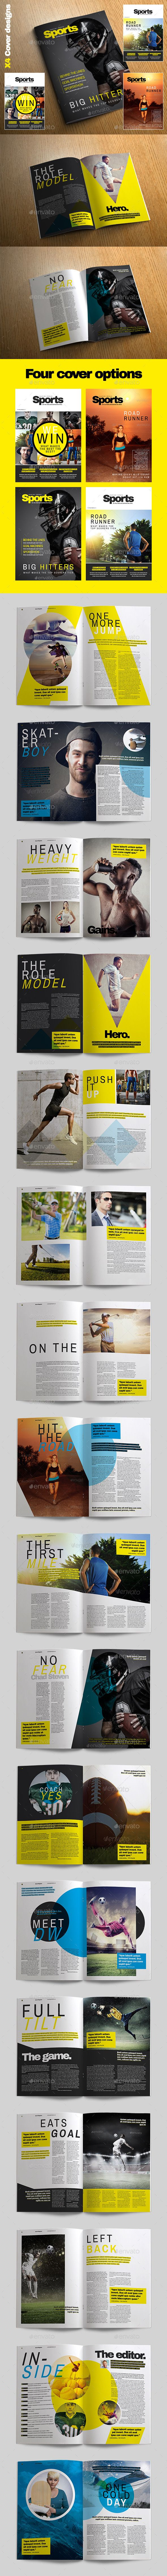 Sports Magazine by CRSDesign Sports Magazine is a professional quality and easy to use magazine template. Packed full or great original page designs. Sports ma